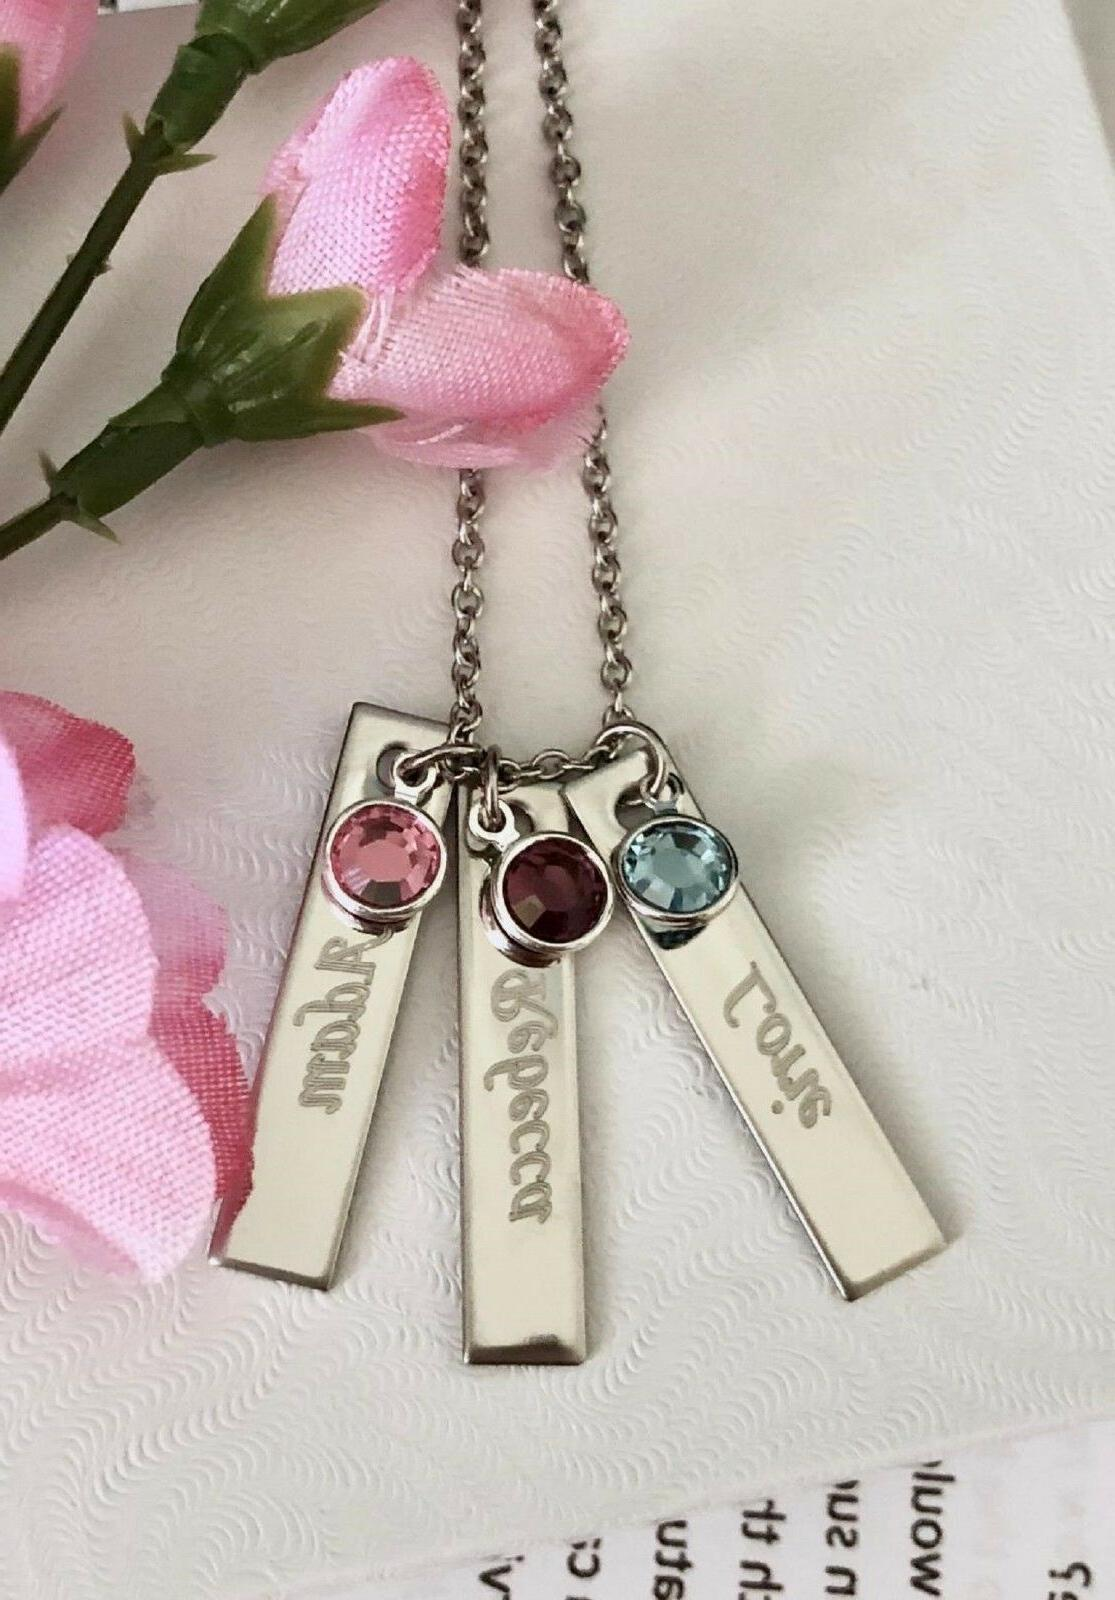 Personalized name/stone steel Name Bar Necklace Bar